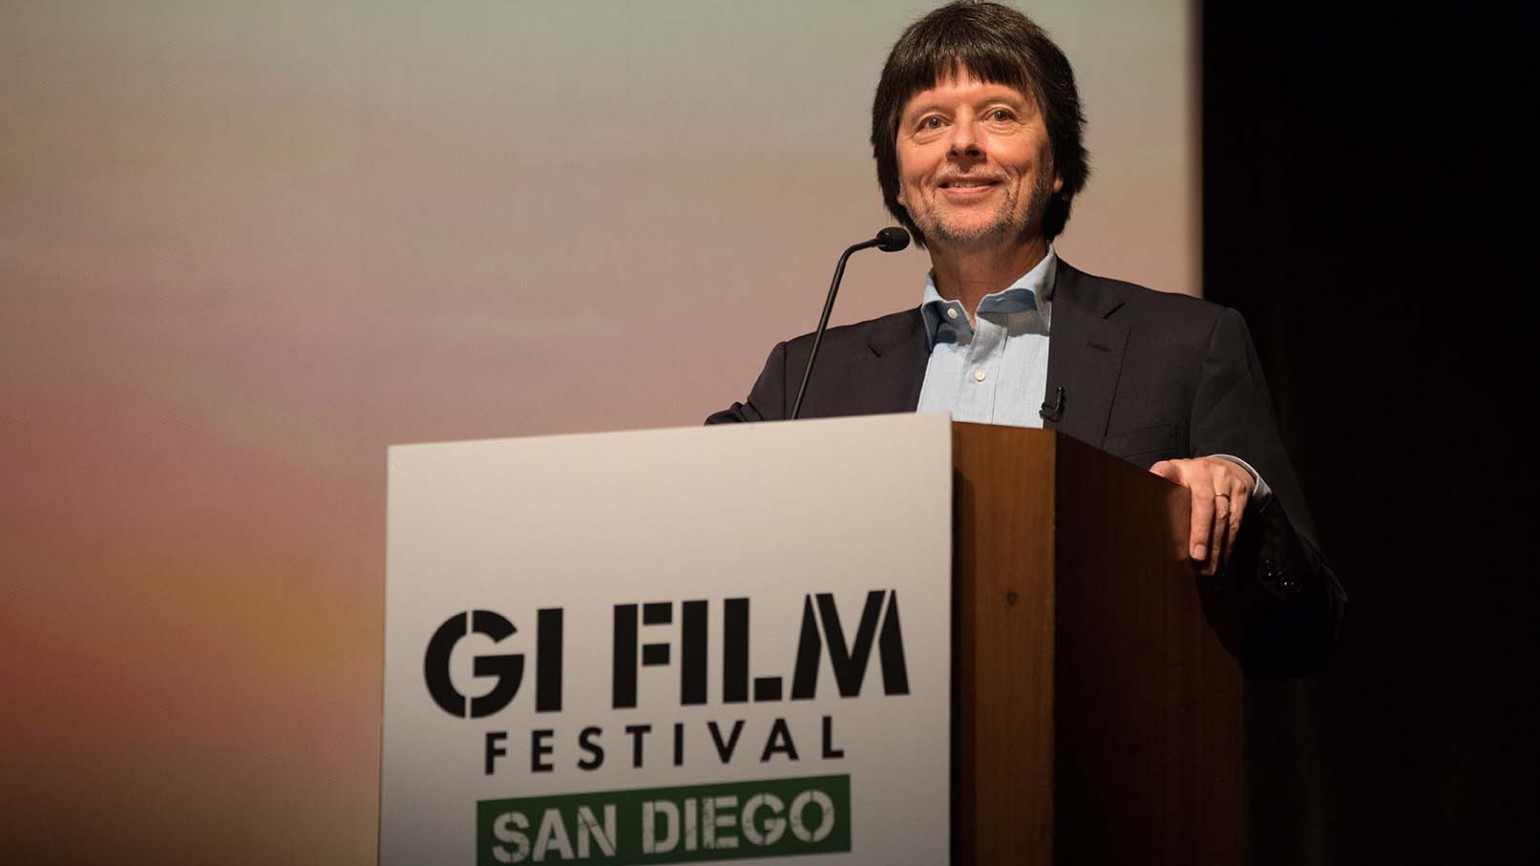 Filmmaker Ken Burns introducing the film.